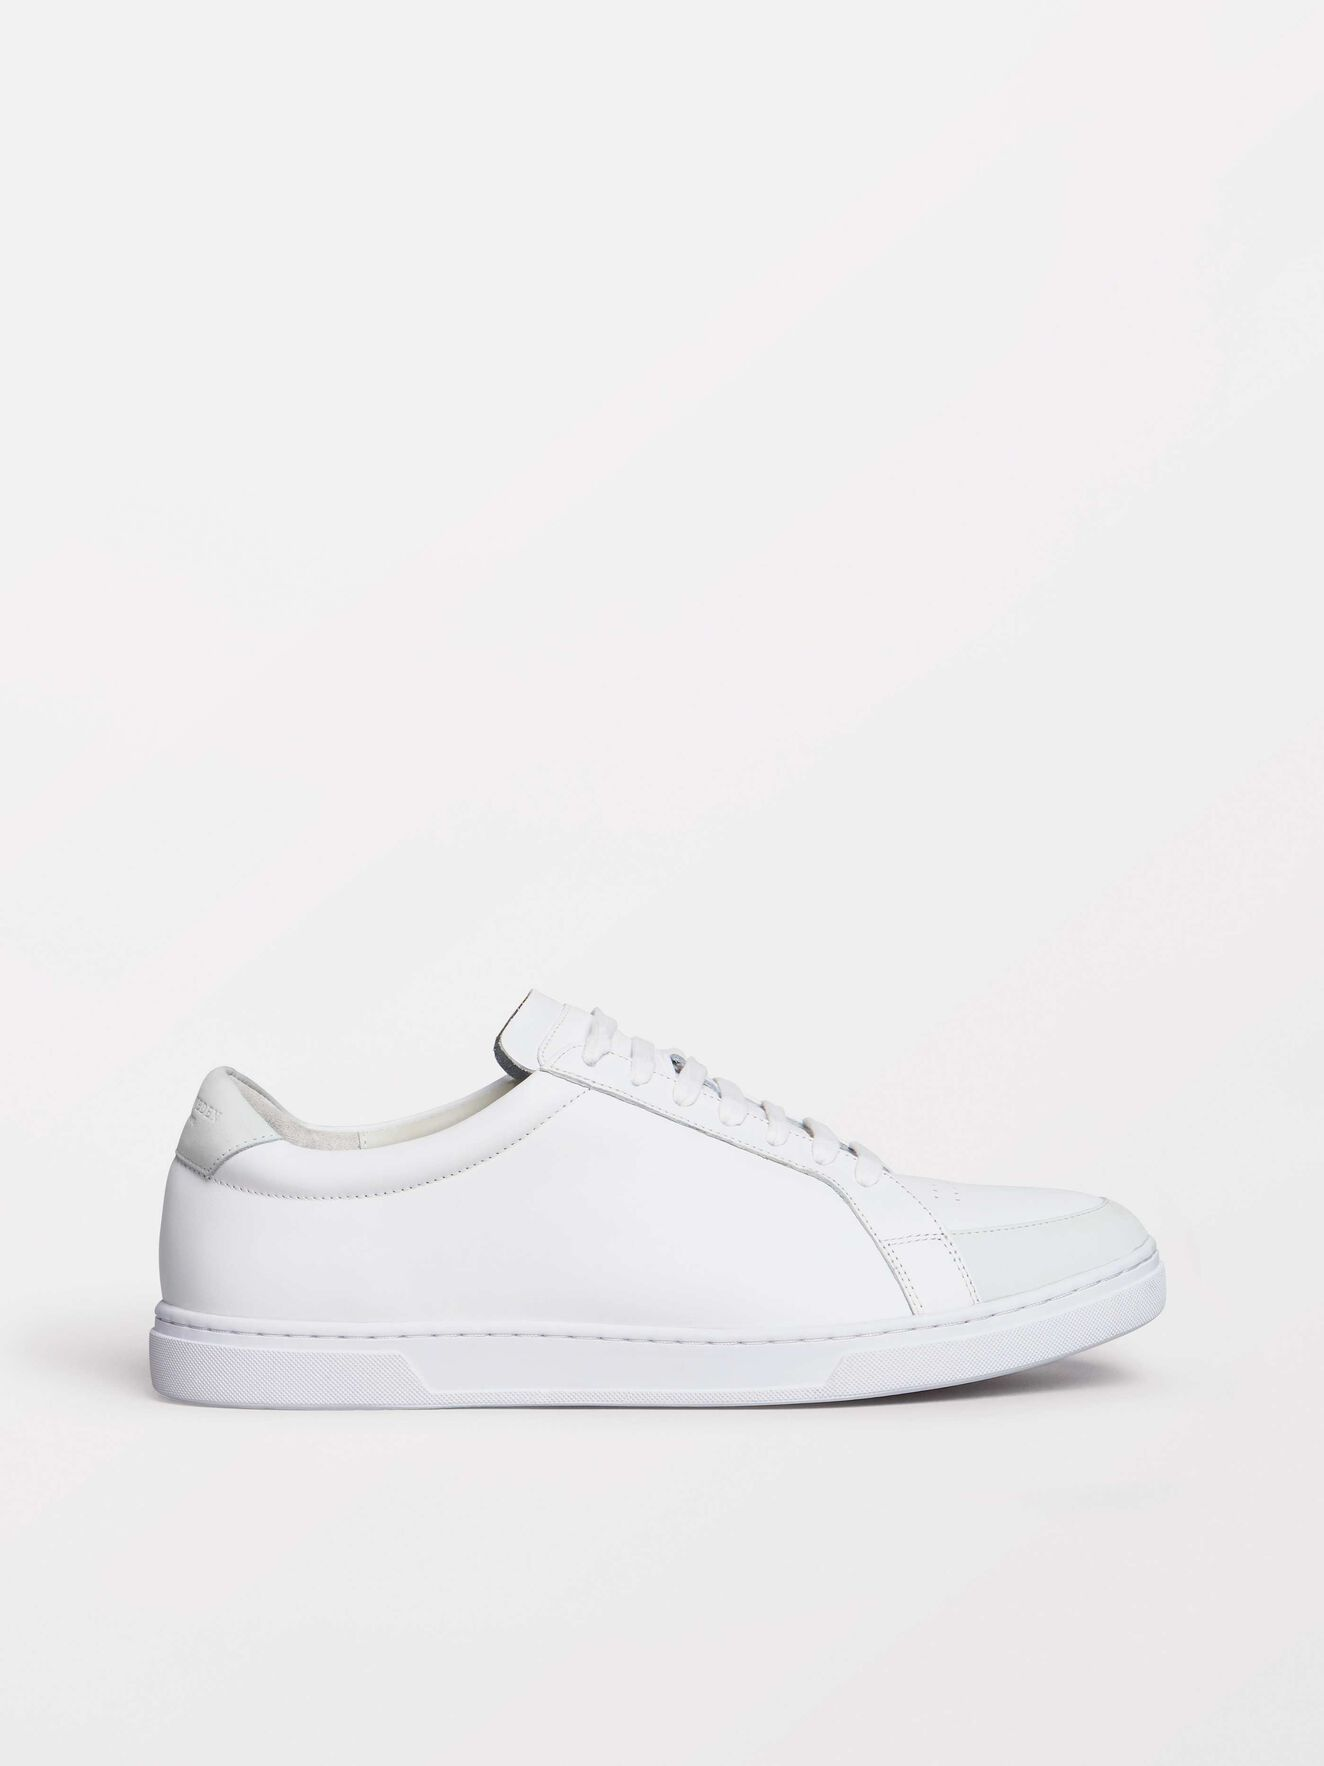 Arne Sneaker in White from Tiger of Sweden